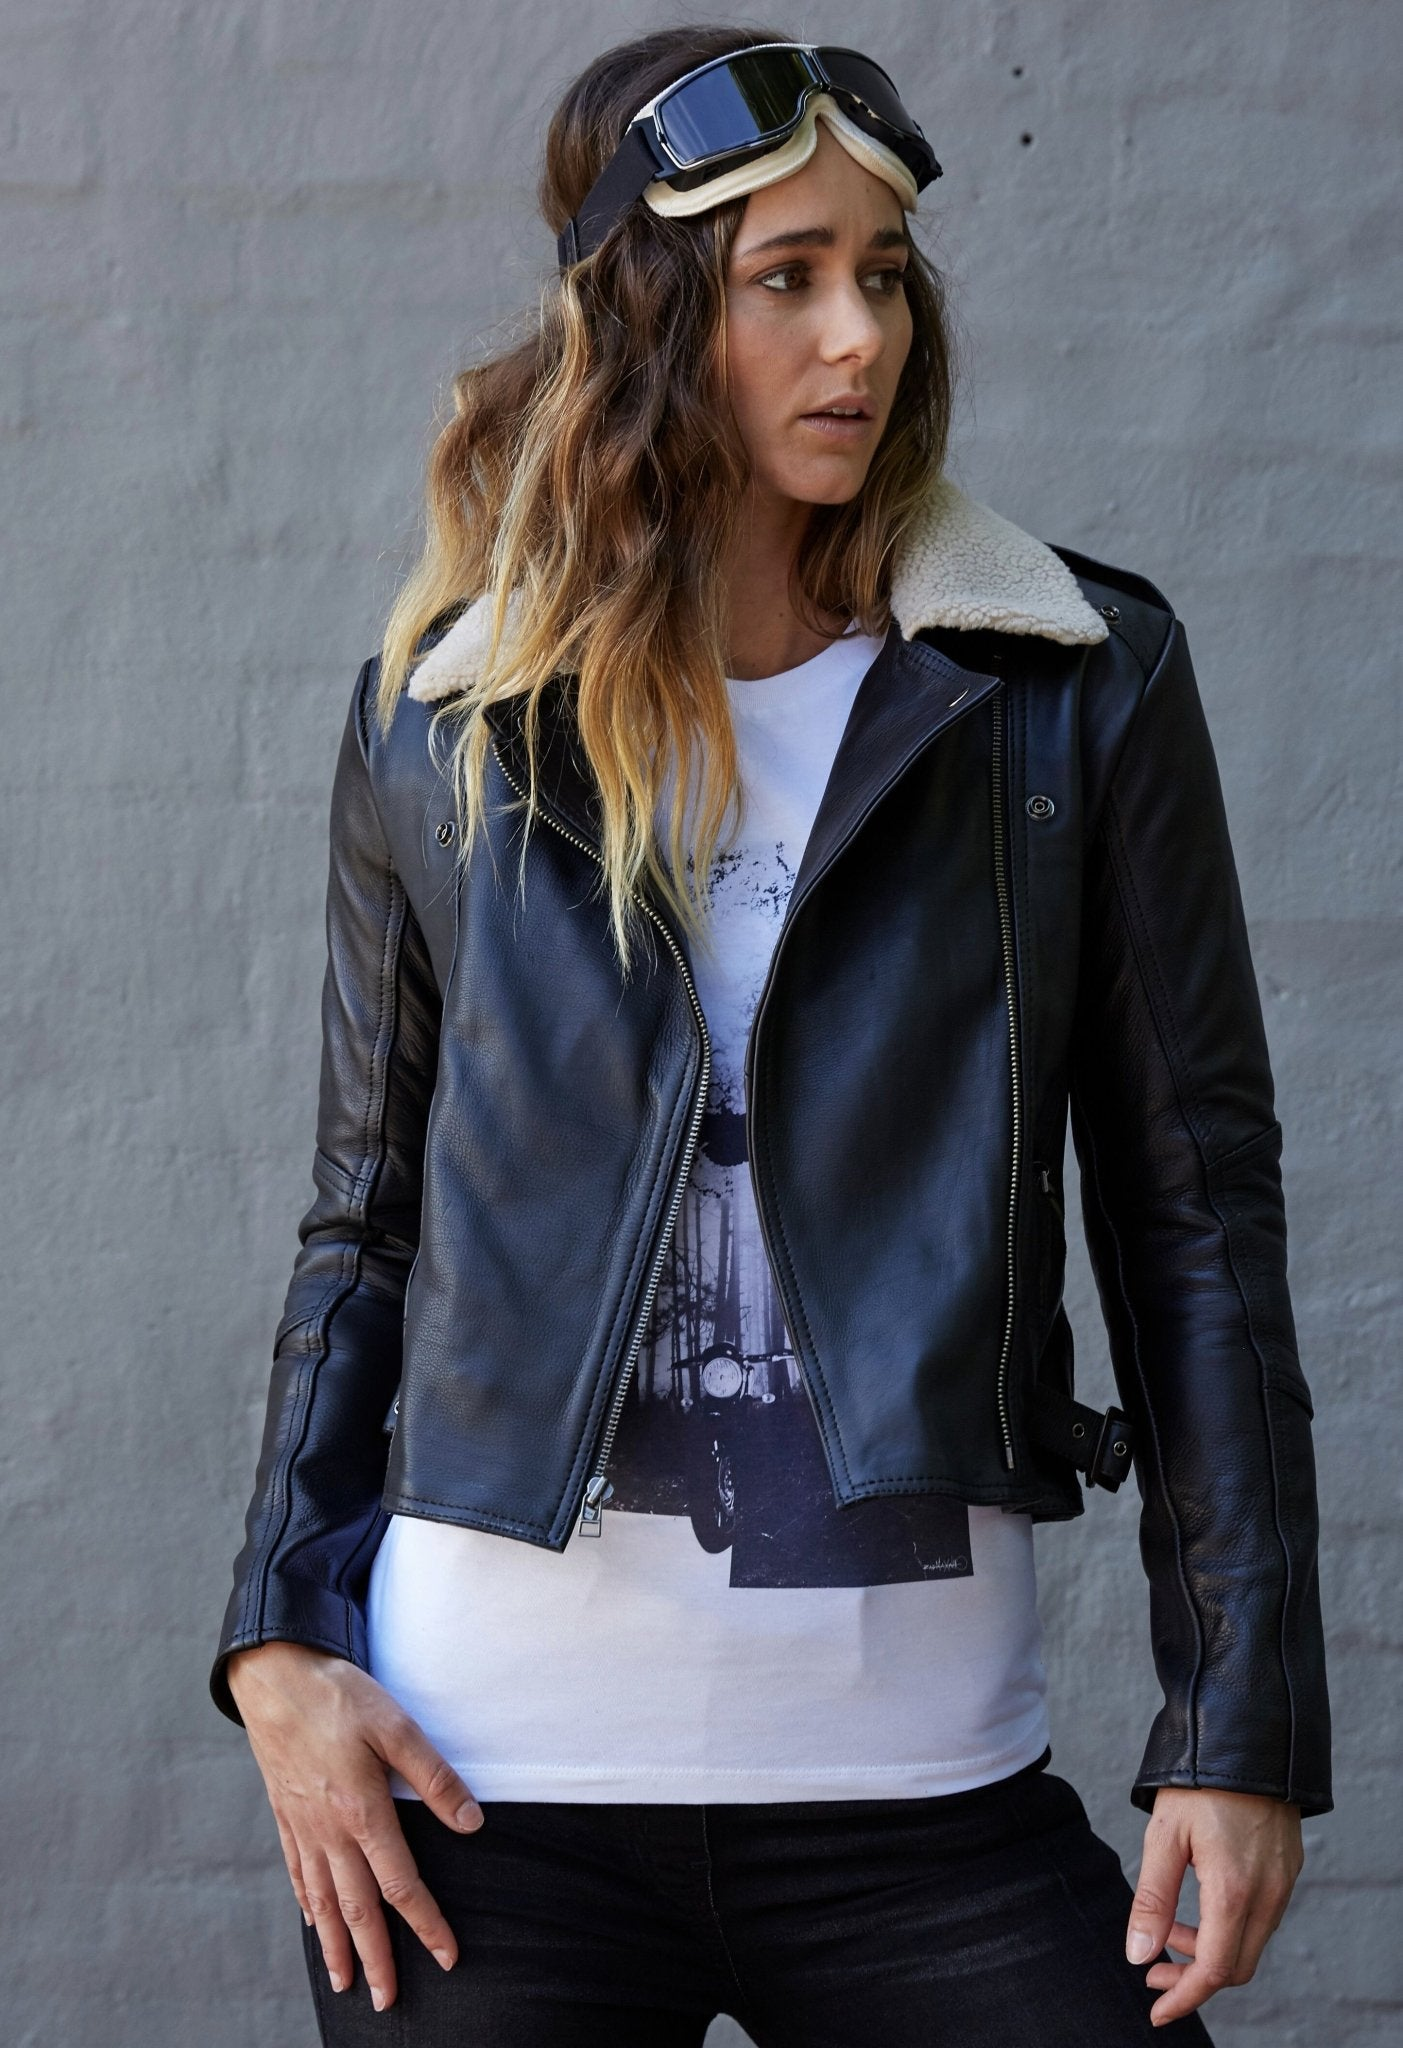 Blackbird - Blackbird Ladies Fly By Night Leather Jacket - Ladies Jackets - Salt Flats Clothing